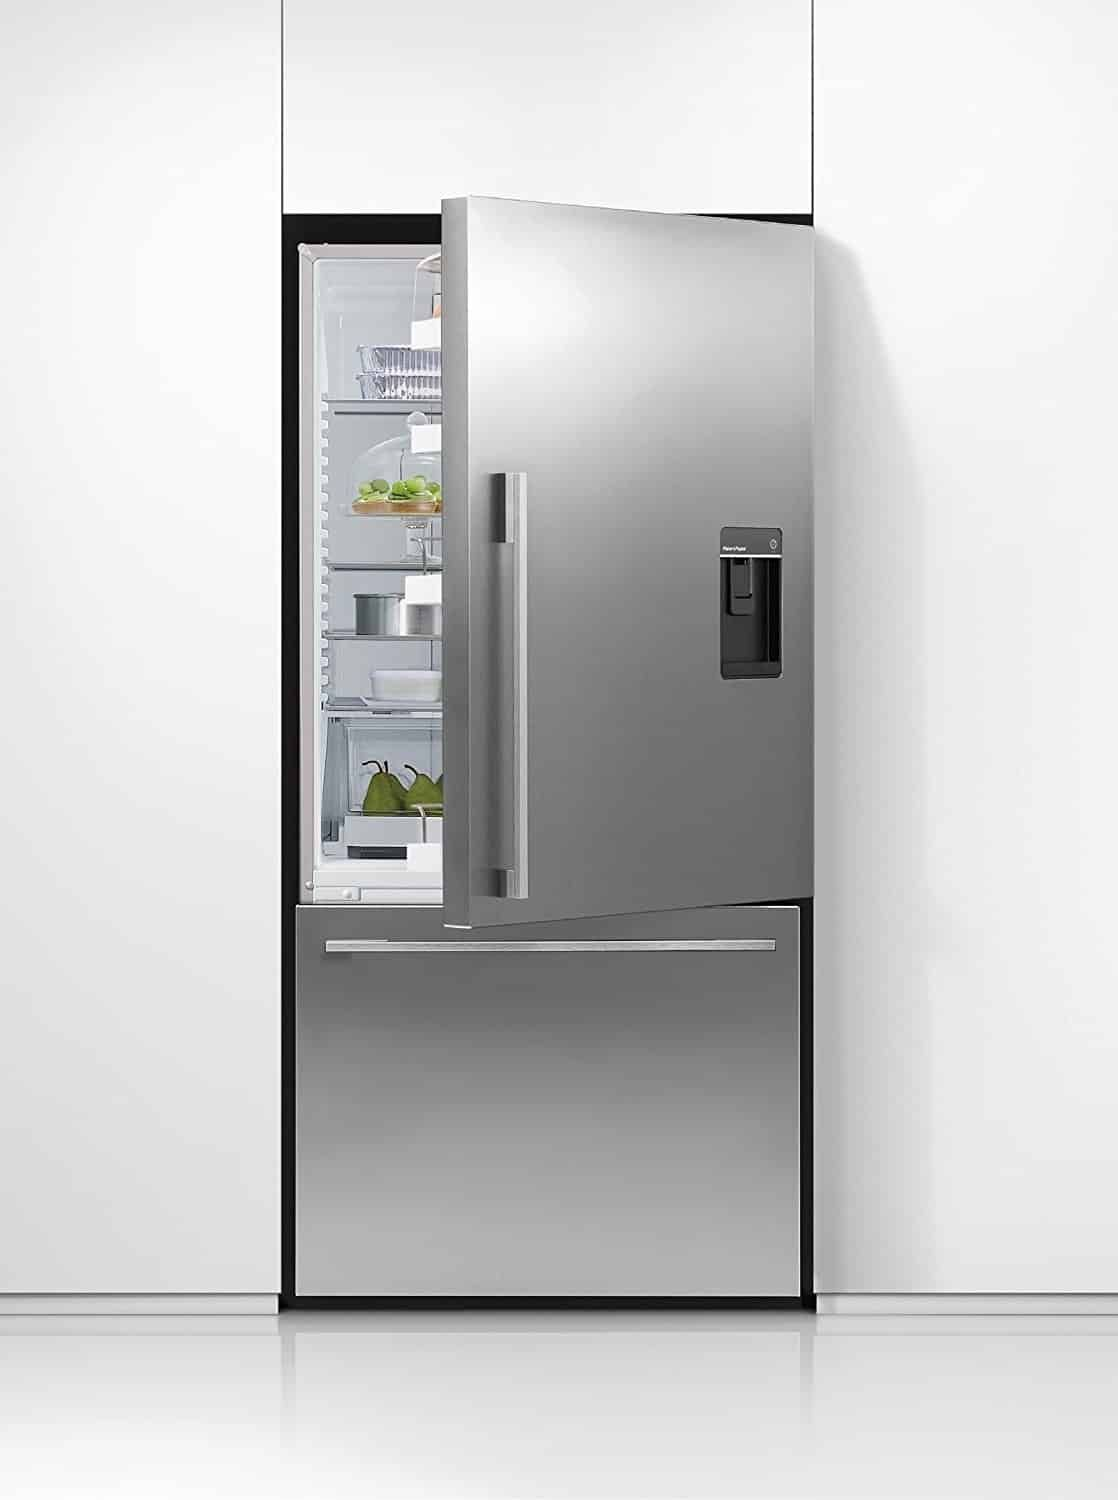 The Largest Capacity Counter Depth French Door Refrigerators French Door Refrigerator Counter Depth French Door Refrigerator French Door Refrigerator Reviews